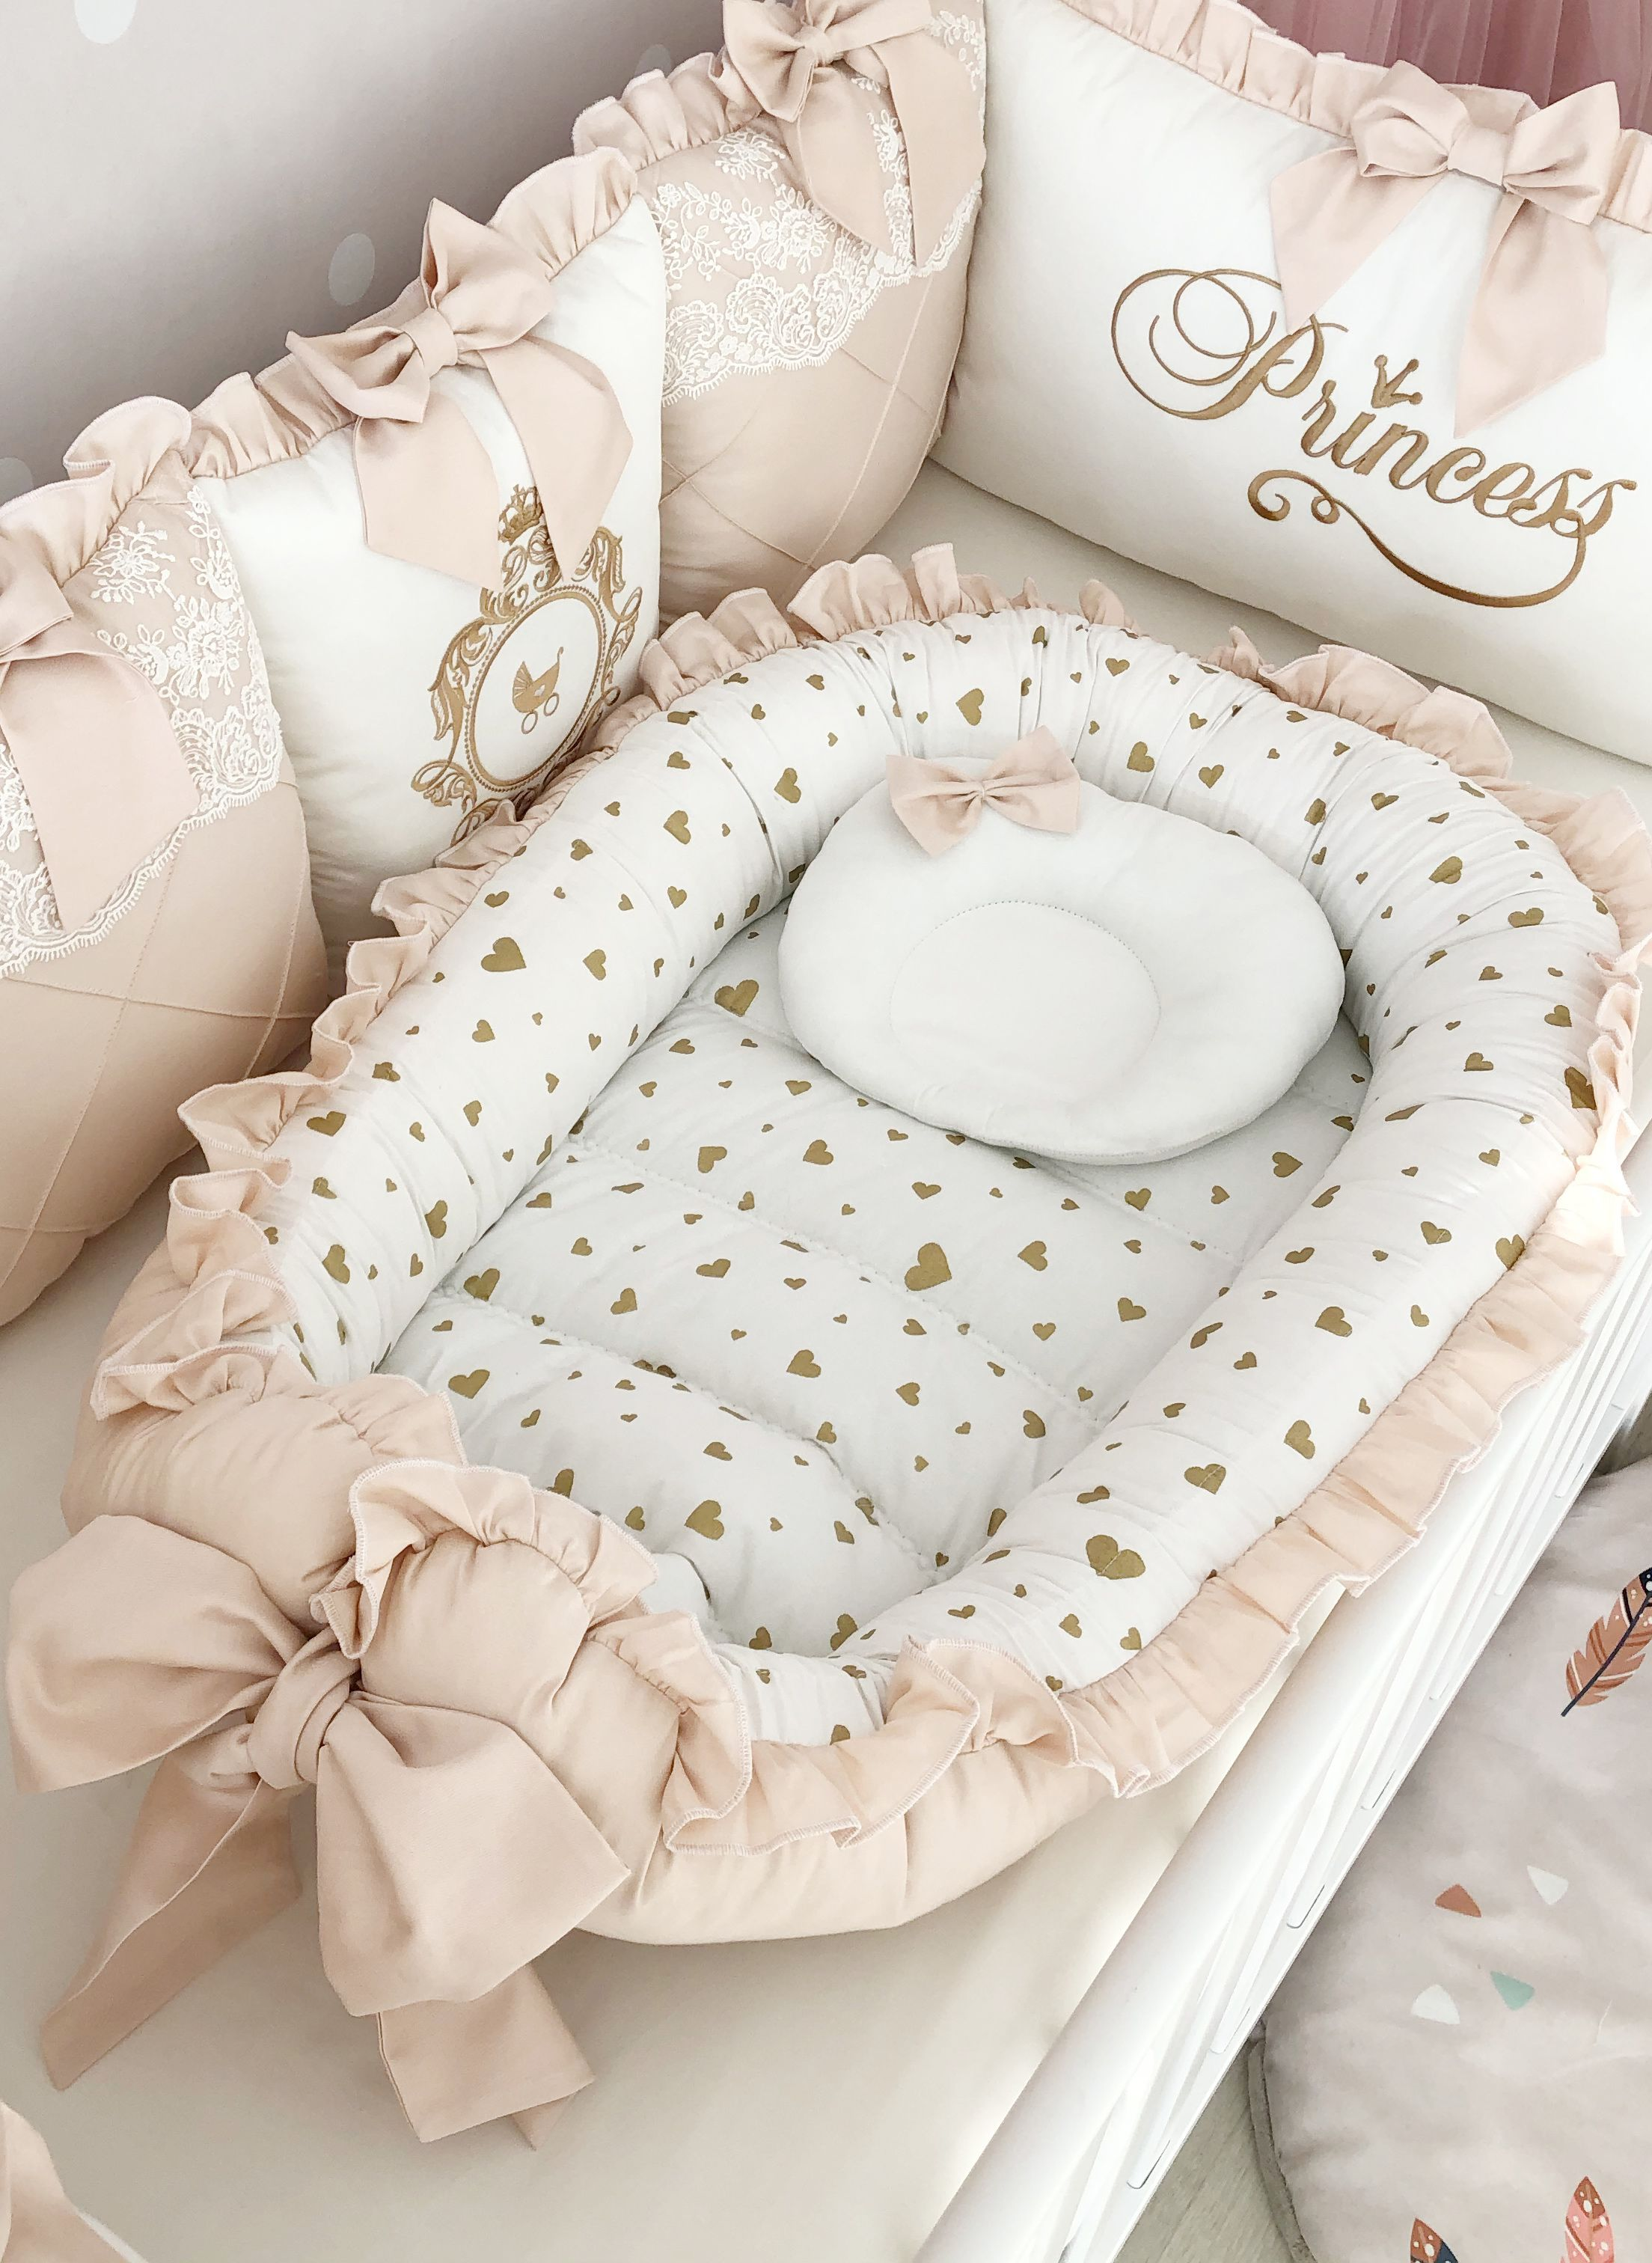 Baby Pillow Set : pillow, Girl:, Bumper, Pillow, Blanket,, Canopy, Sheet, Bedding,, Bedding, Girl,